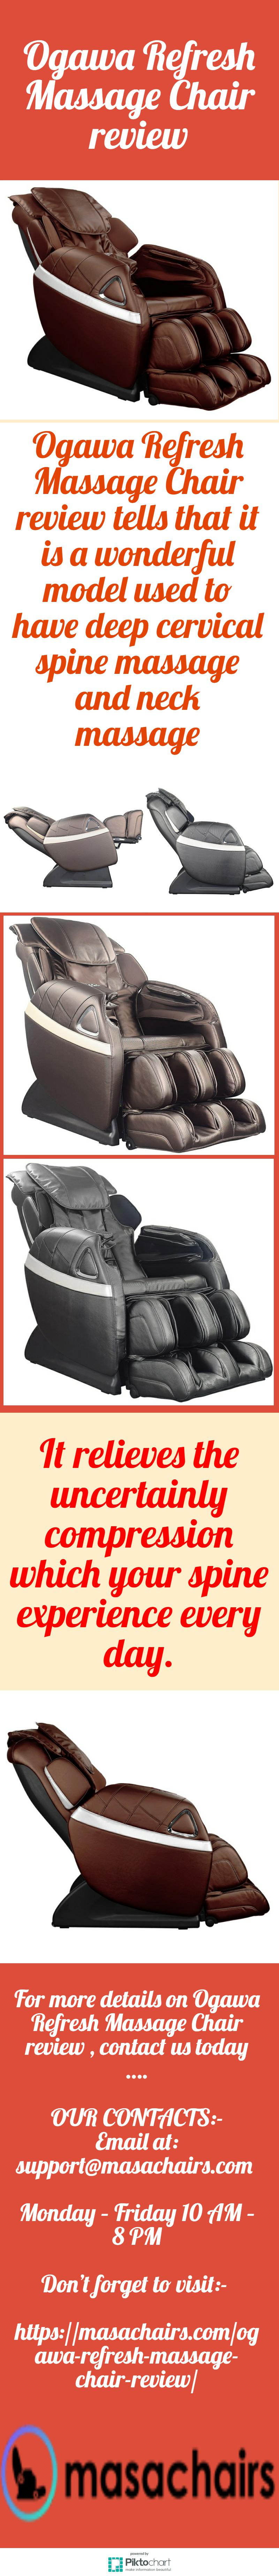 Ogawa Refresh Massage Chair Review Priceless Ogawa Refresh review